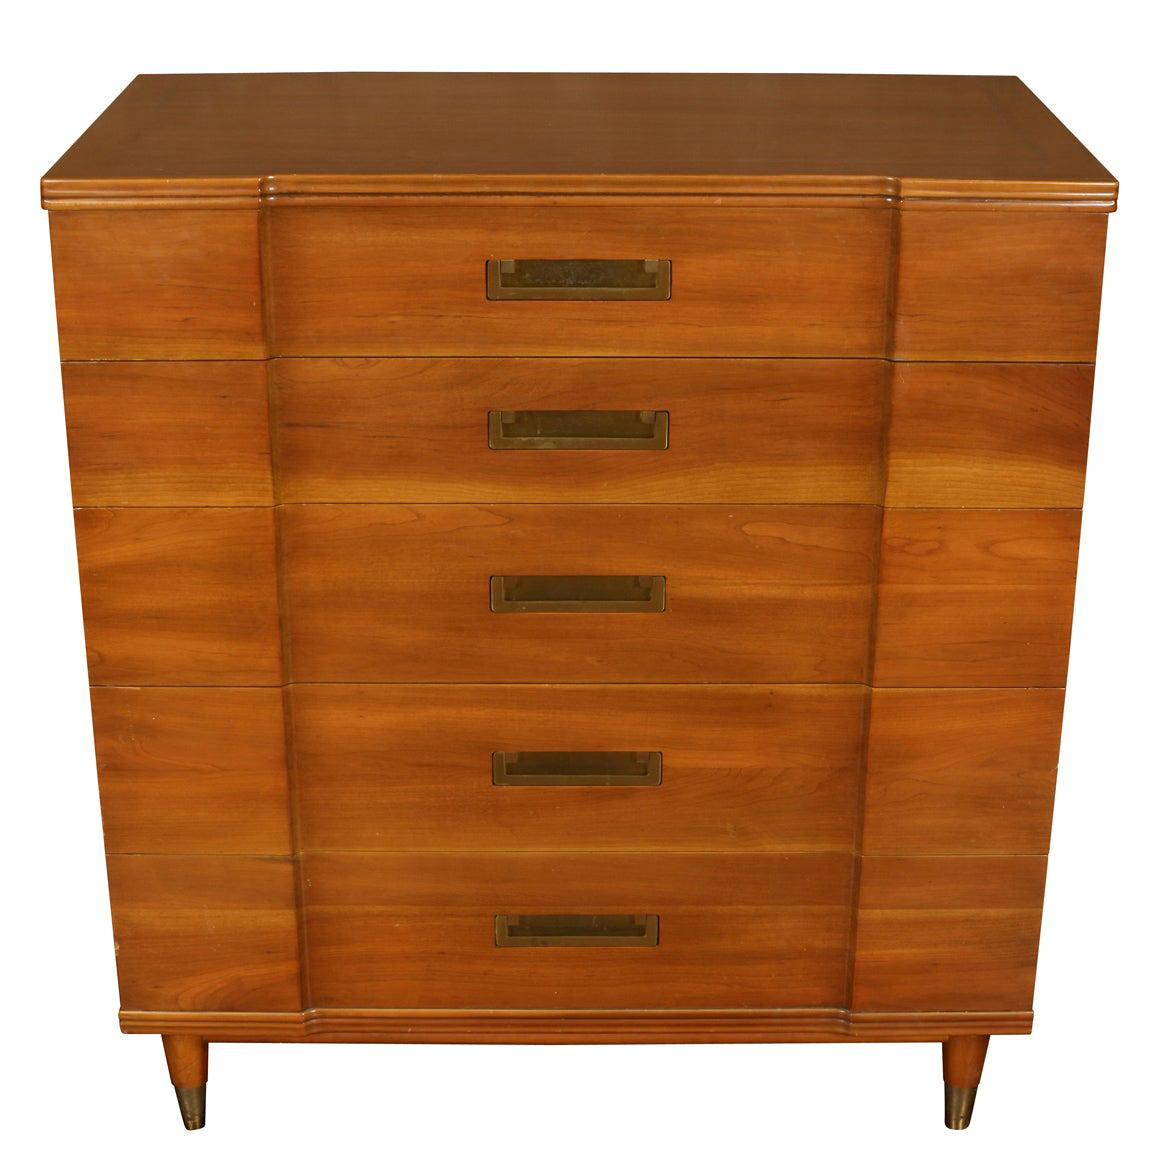 Tall Campaign Chest by John Clingman for Widdicomb